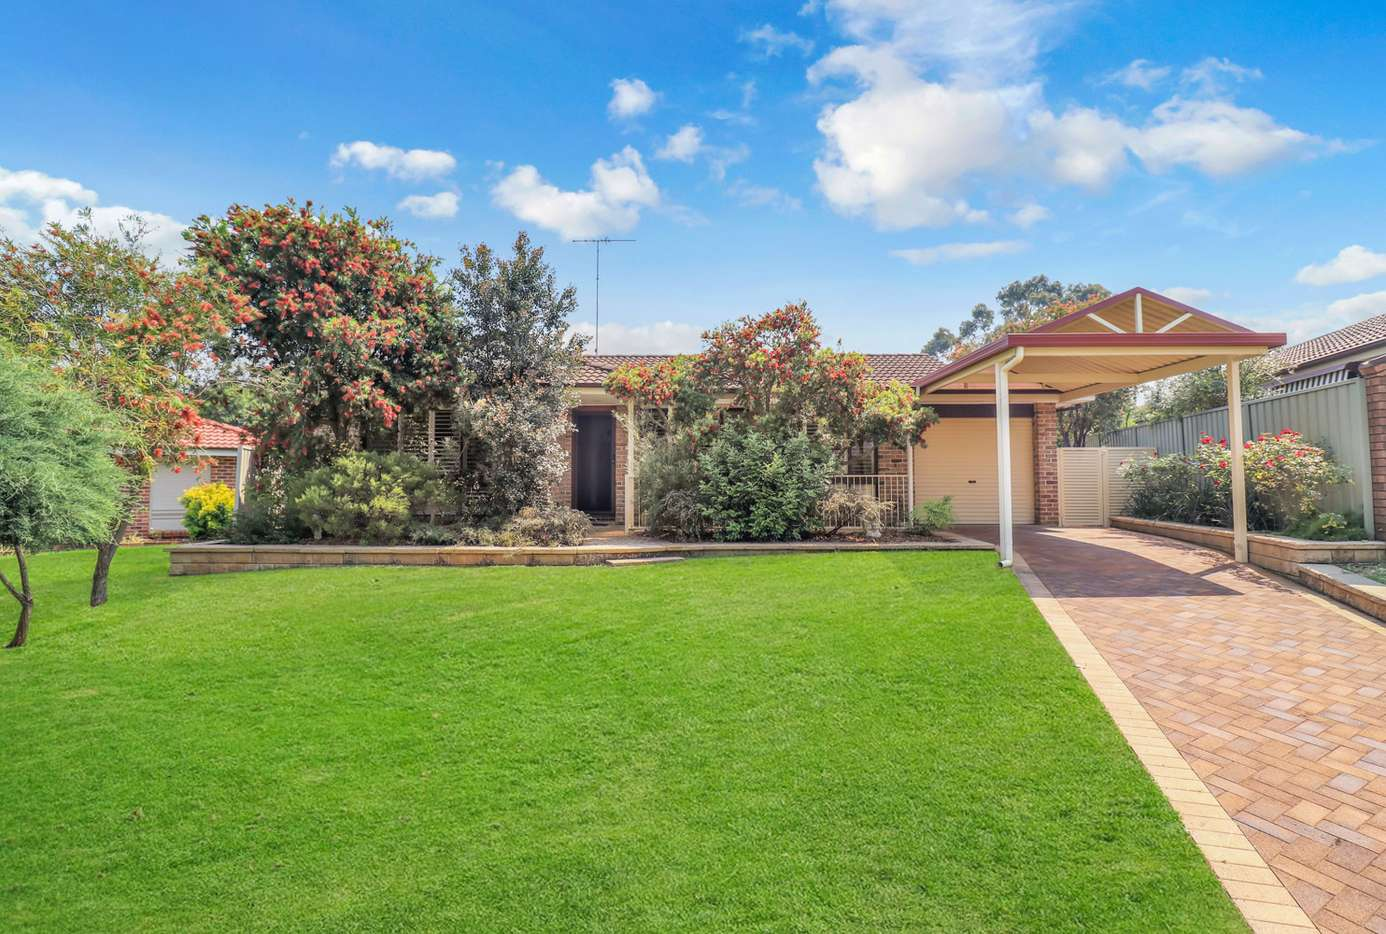 Main view of Homely house listing, 5 Kan Close, St Clair, NSW 2759